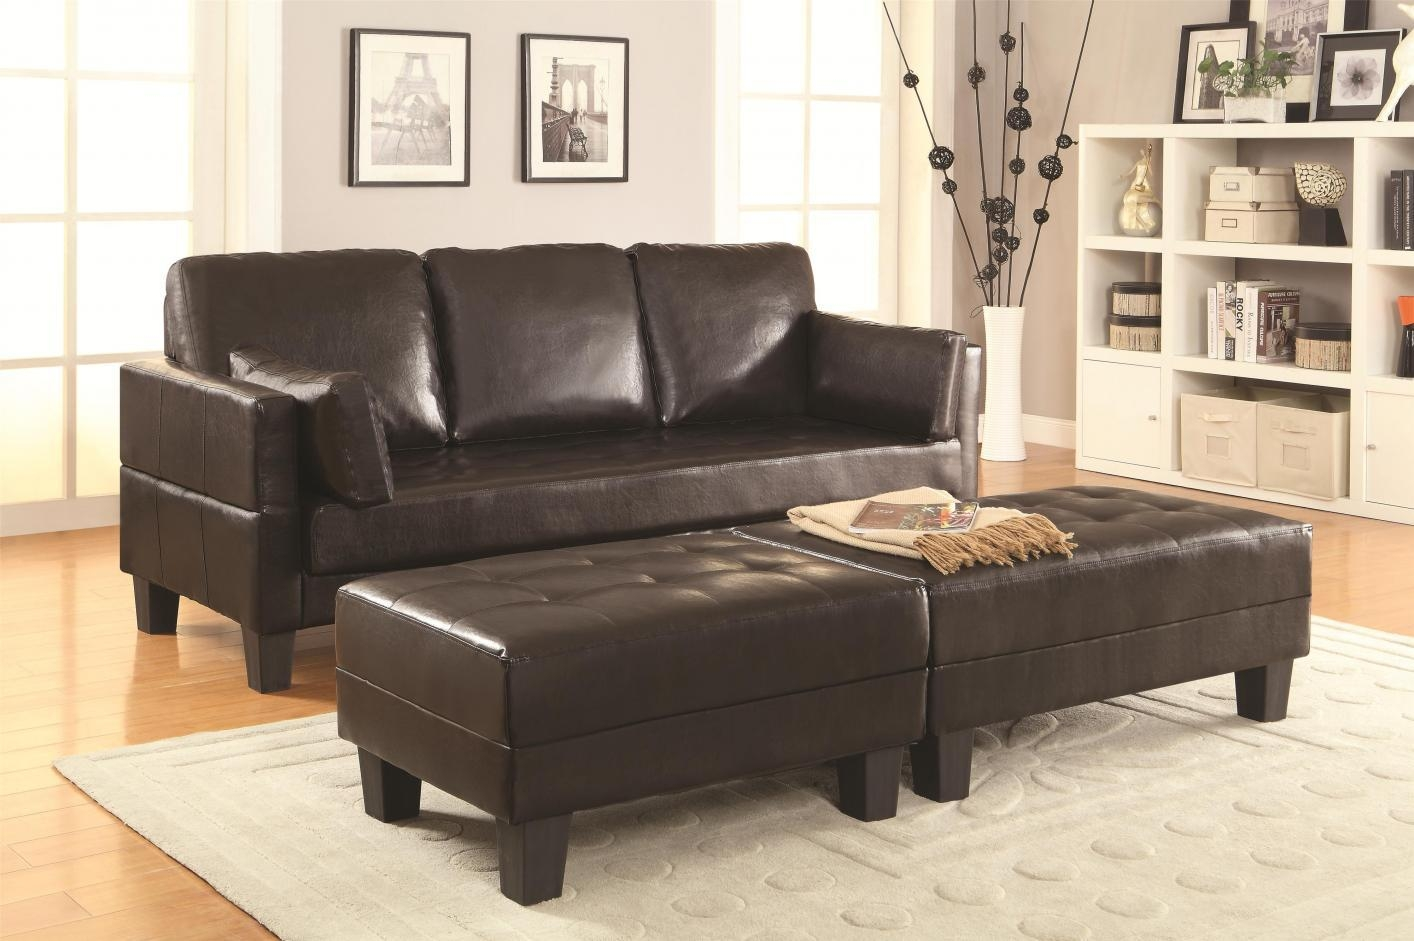 Sofas Center : Metal Frame Futon Sofa With Mattress Serta Within Serta Sectional (Image 20 of 20)